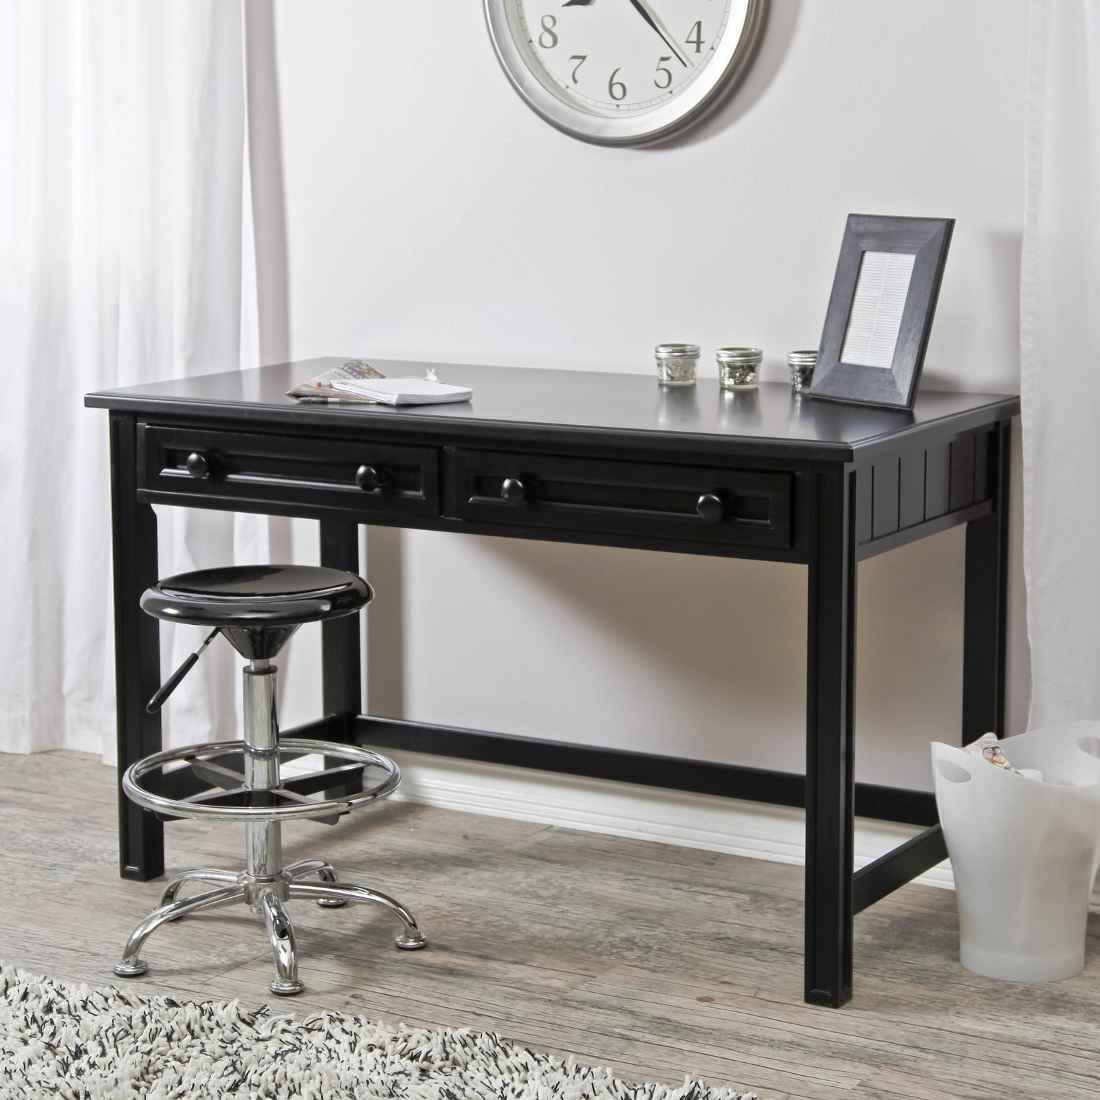 Lovely Design Of The Black Desk With Drawers With White Wall Added With Grey Wooden Floor And Grey Rugs Ideas